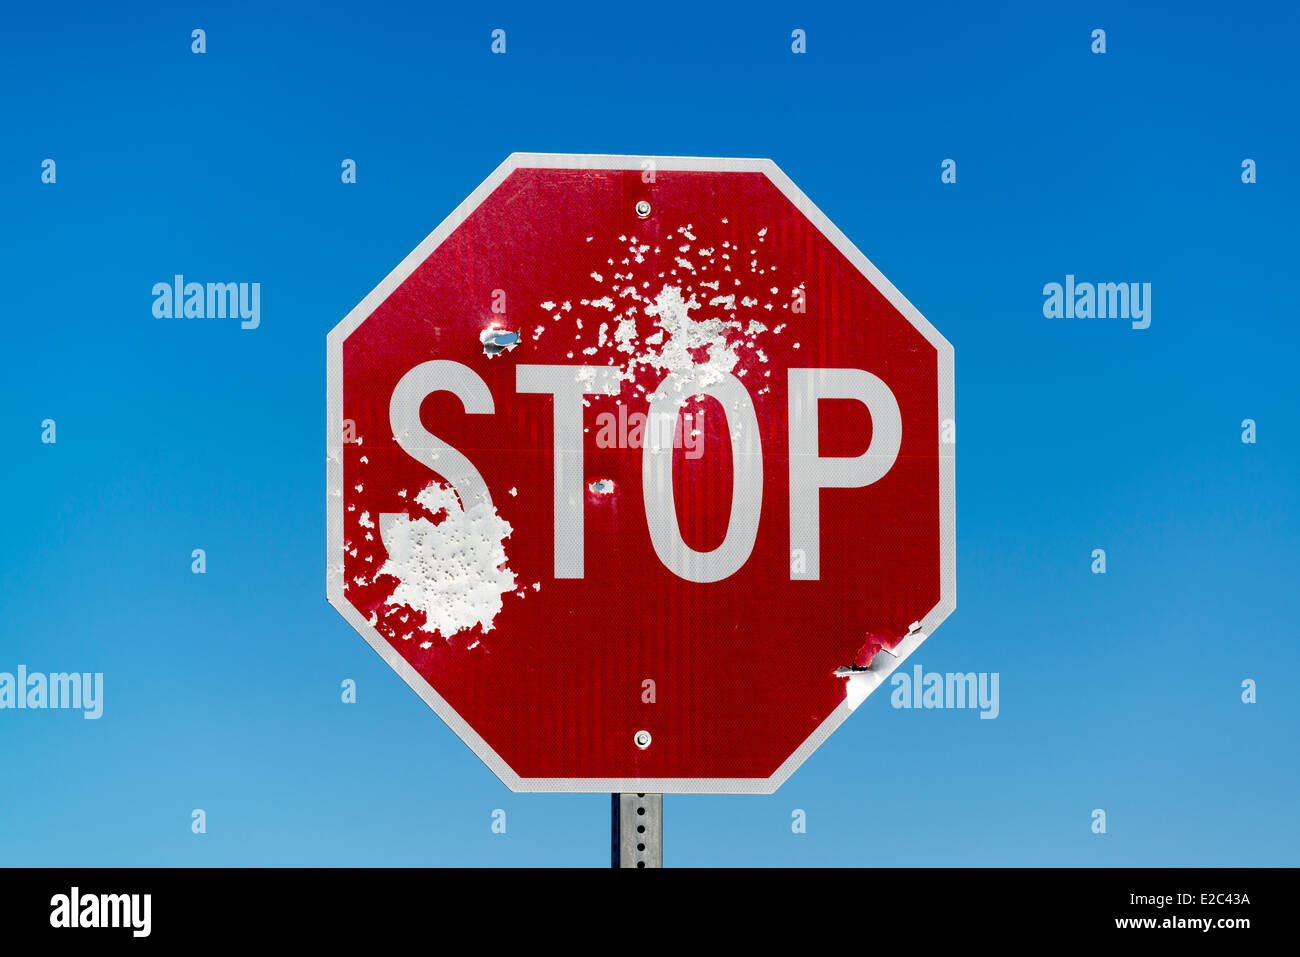 Bullet scarred stop sign. - Stock Image